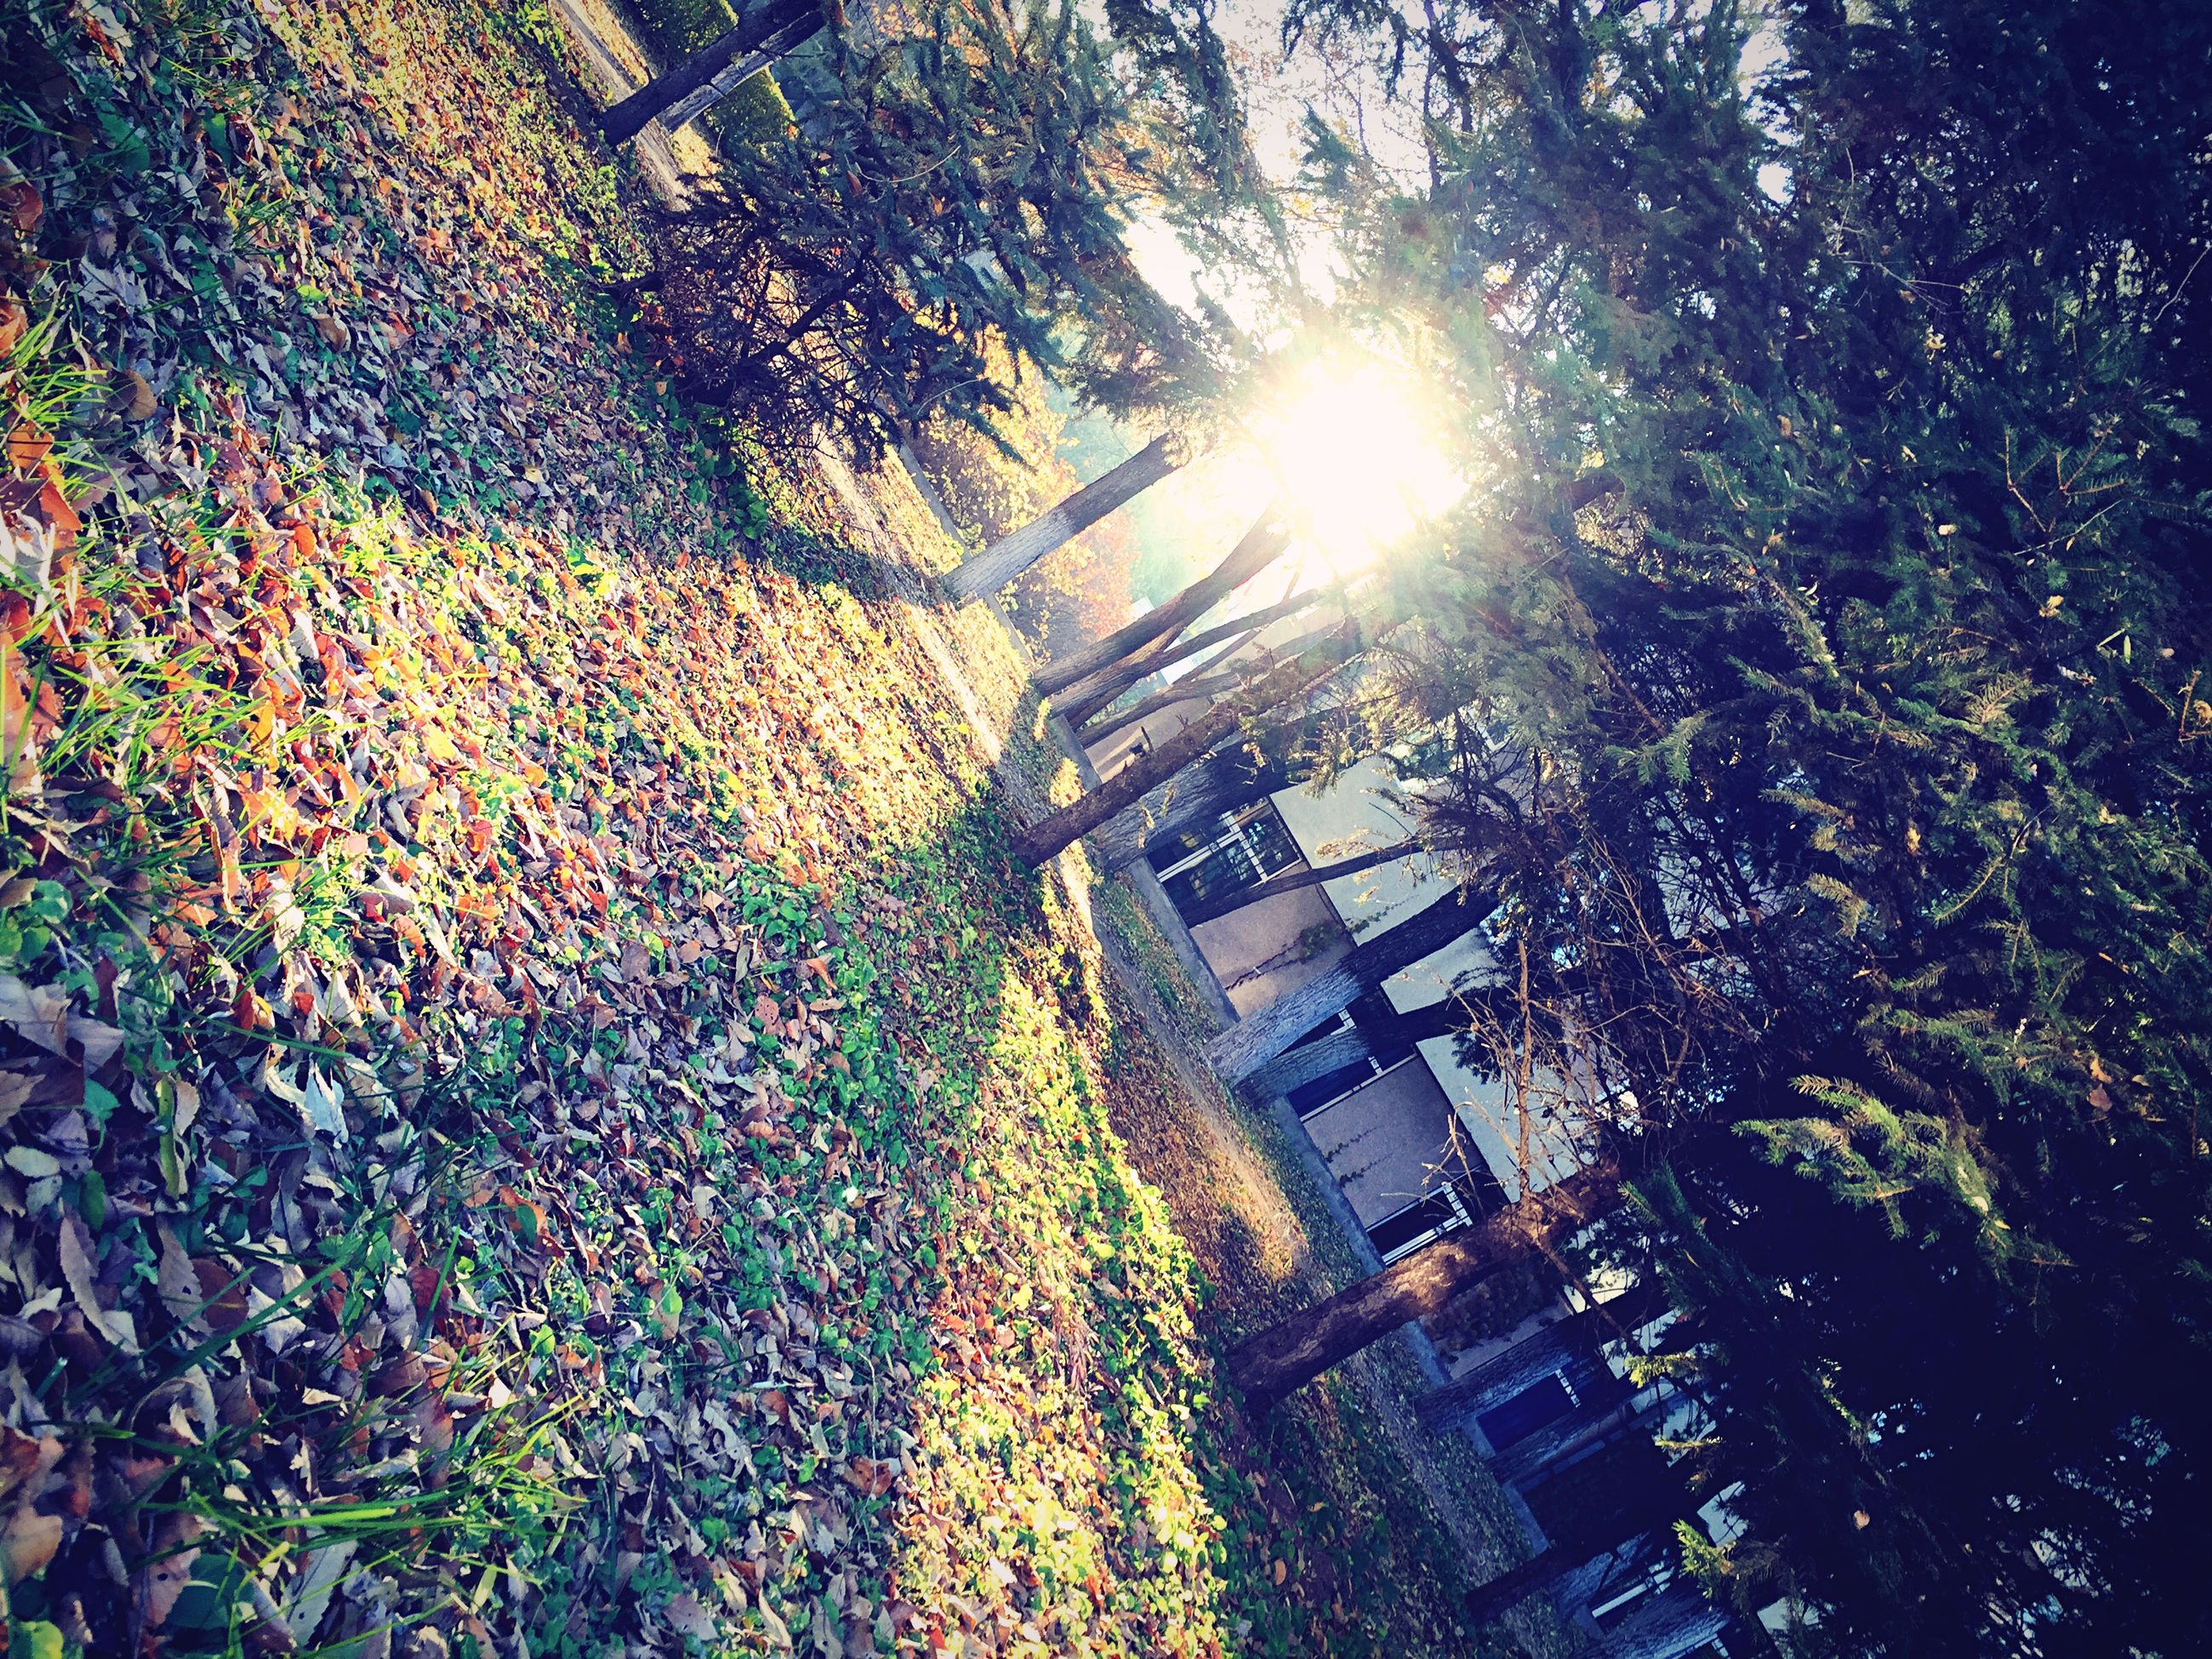 building exterior, tree, sunlight, architecture, sunbeam, sun, growth, built structure, lens flare, sunny, nature, low angle view, day, city, outdoors, bright, no people, plant, branch, leaf